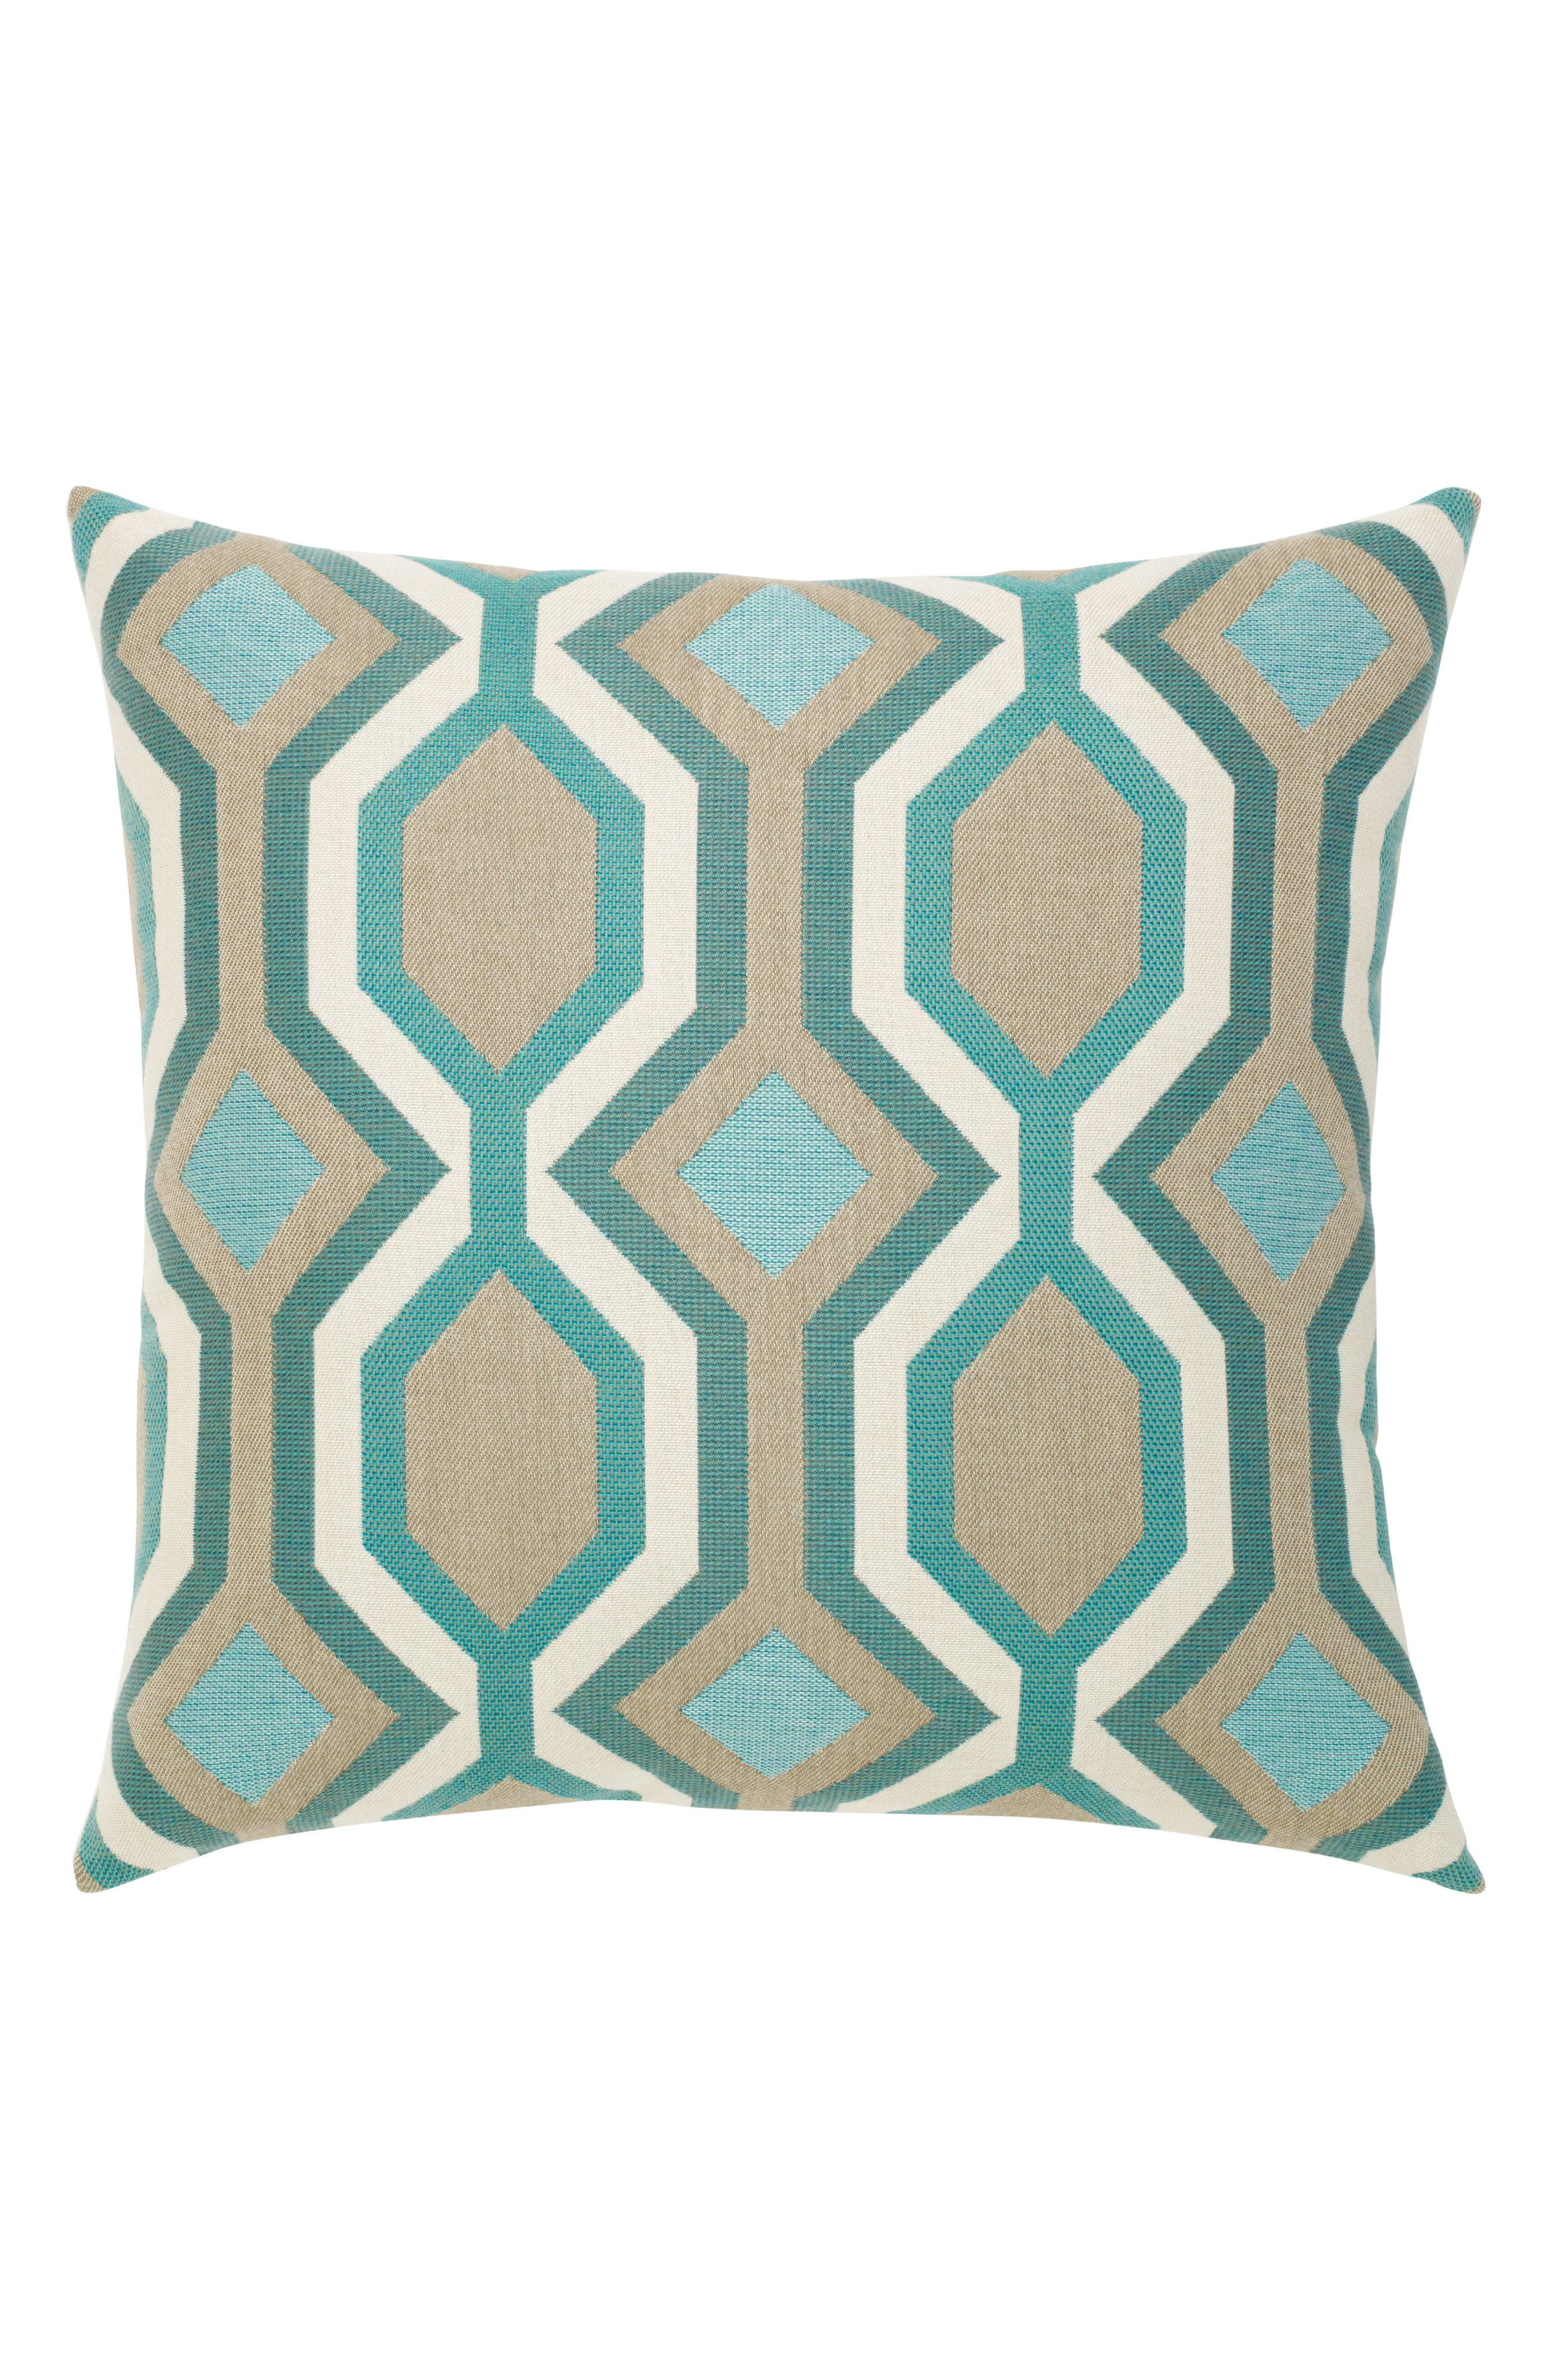 Turquoise Geo Indoor/Outdoor Accent Pillow,                             Main thumbnail 1, color,                             Blue/ Brown